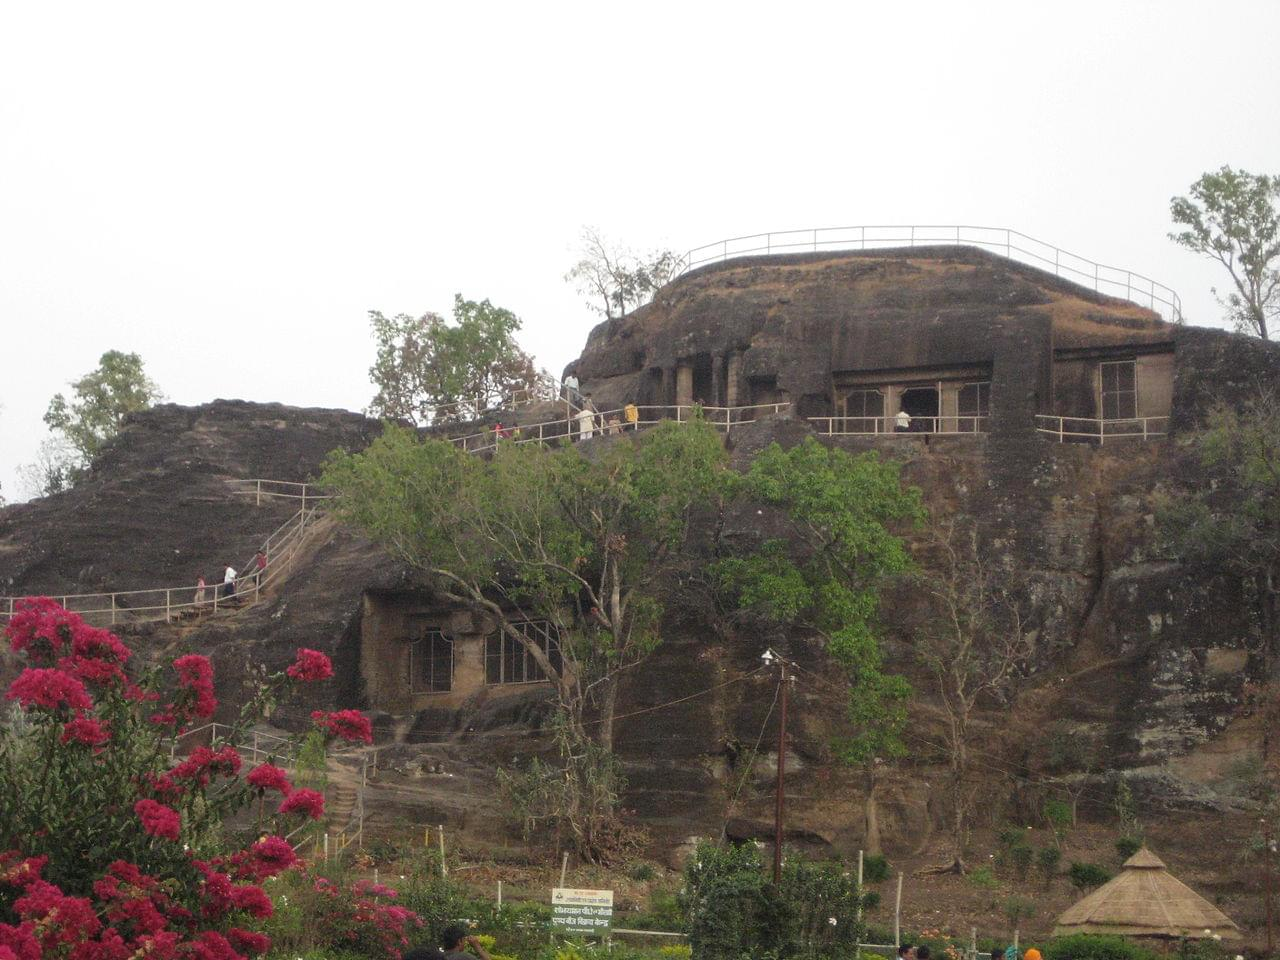 4-Night-5-Days-Bhopal-Tour-Package-with-Panchmarhi-JustWravel-1597394415-4.jpg